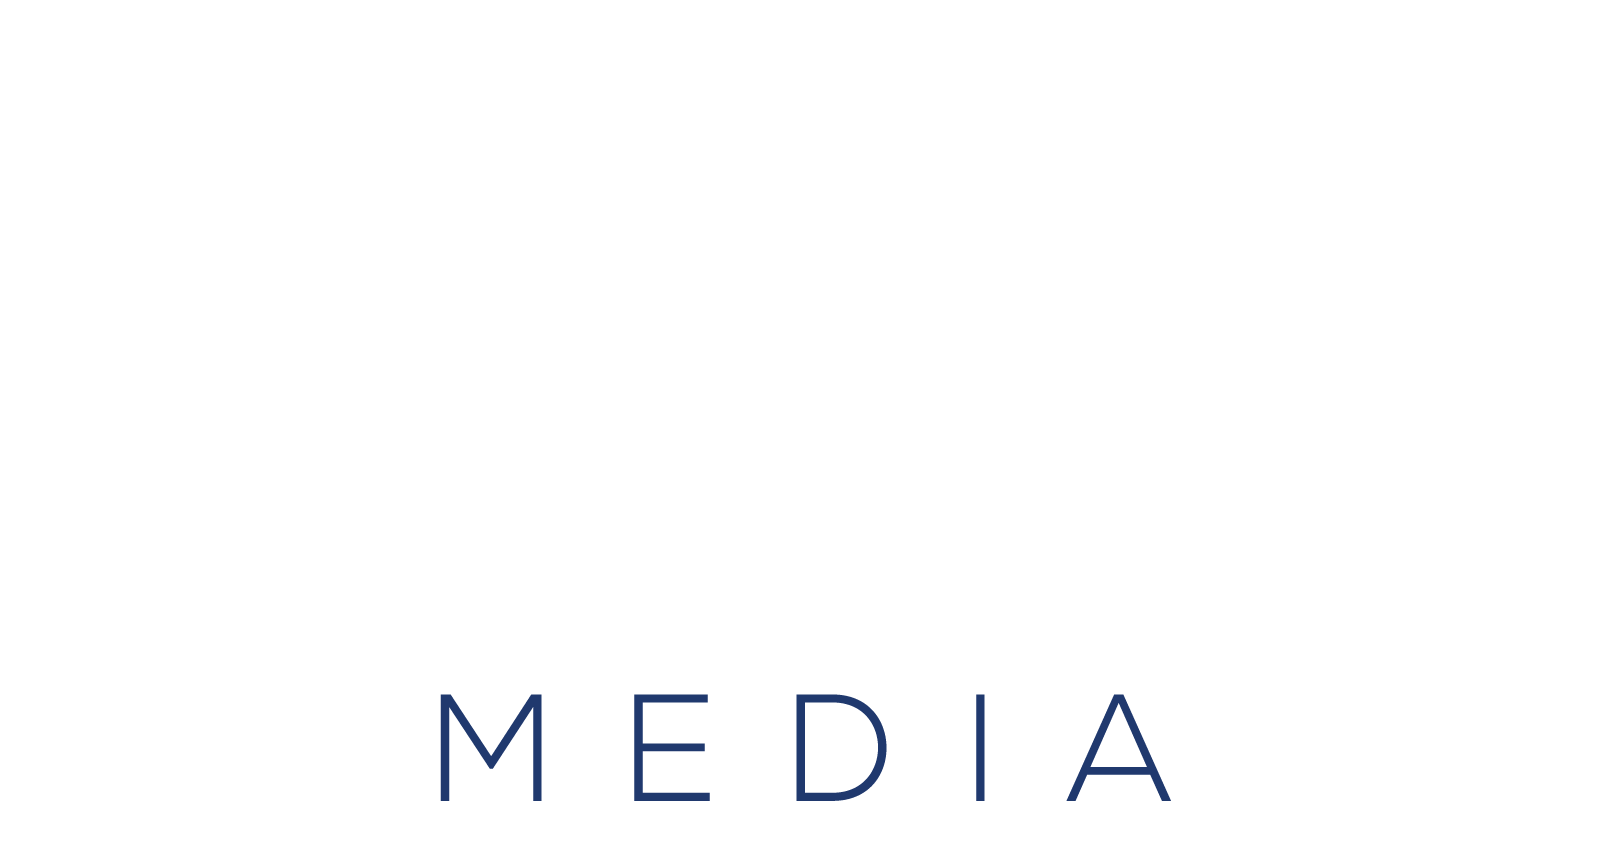 Binswood Media Limited